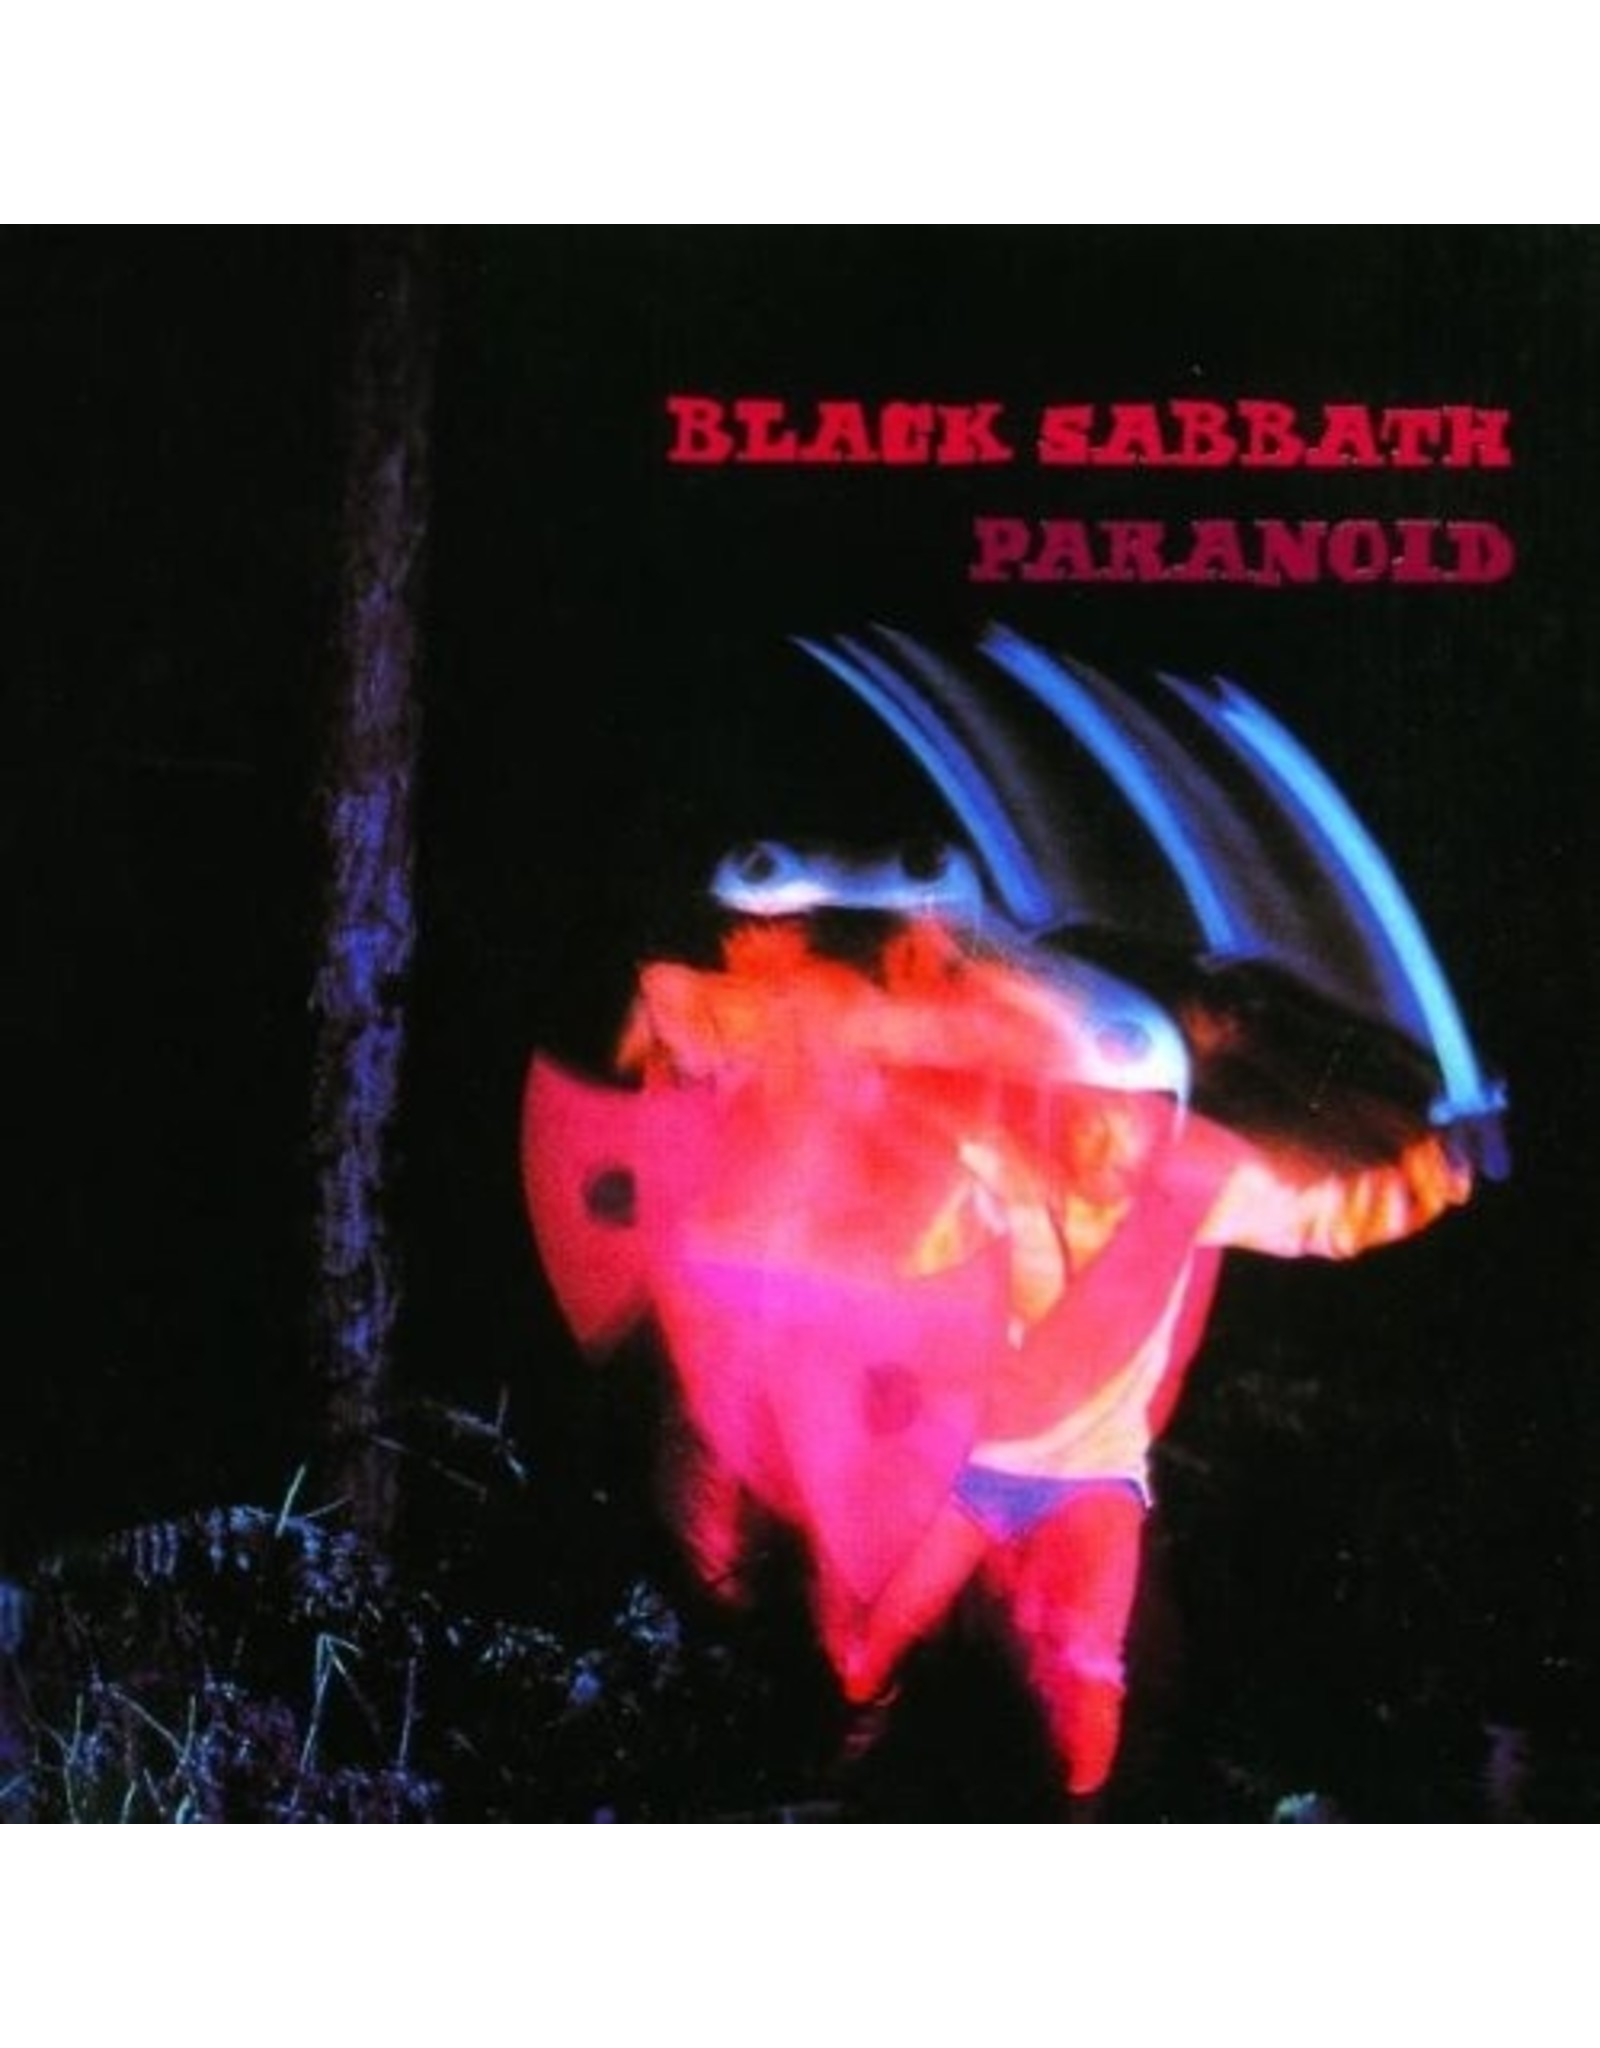 New Vinyl Black Sabbath - Paranoid LP